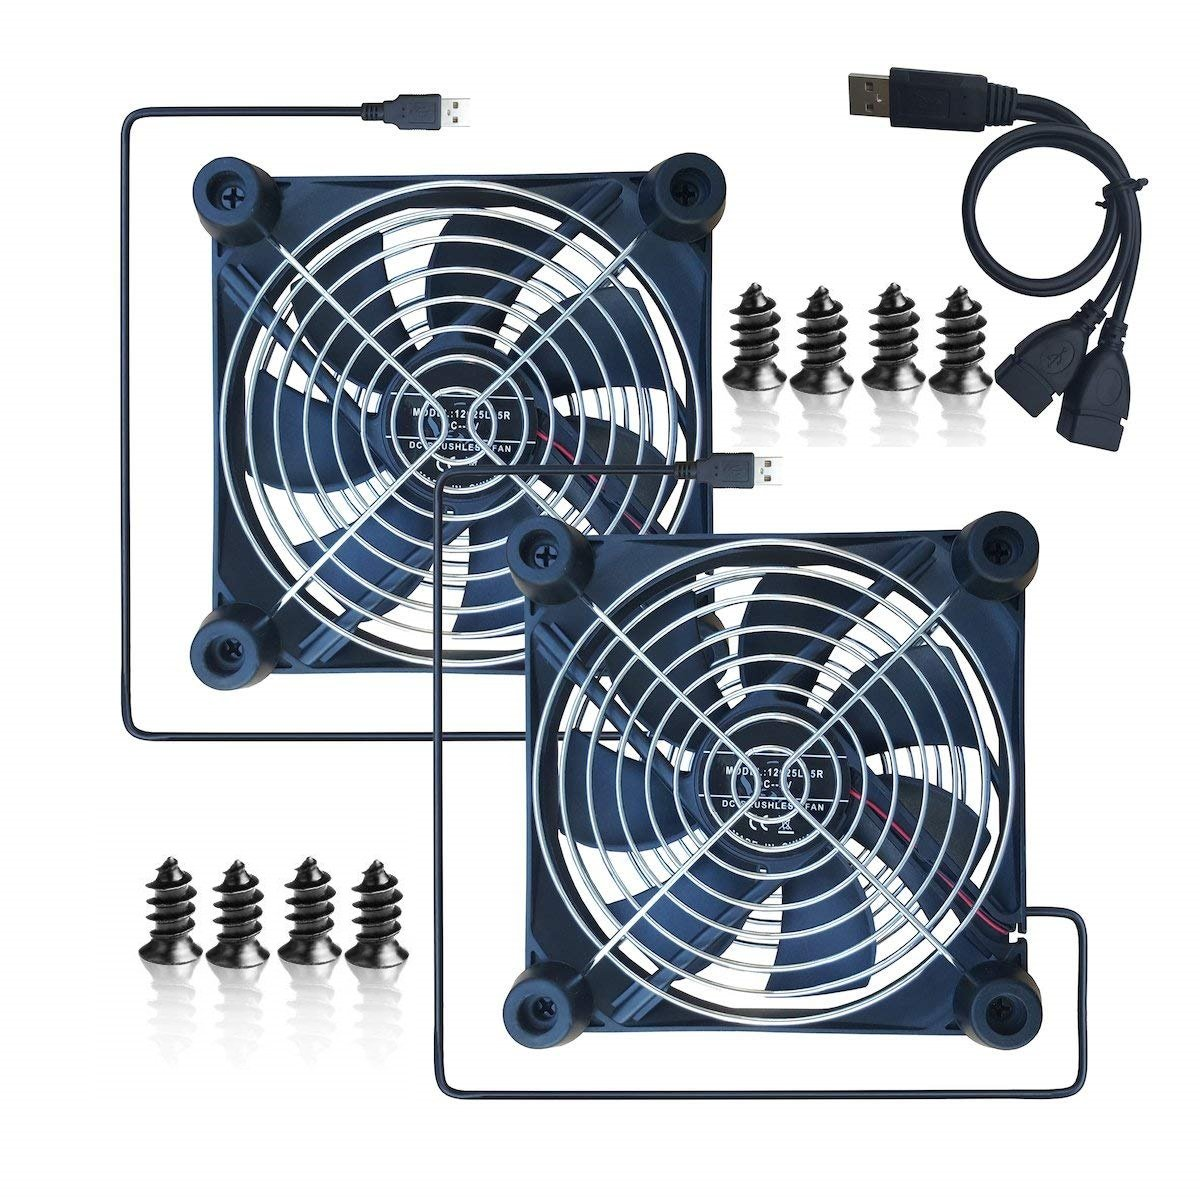 Xbox MERES 12CM USB Quiet Cooling Fan with Double Grilles and Rubber Feet for Airport Express routers 2PCS HDD case PS Radiator Coller Fan for Time Capsule with the size 120 x 120 x 25mm